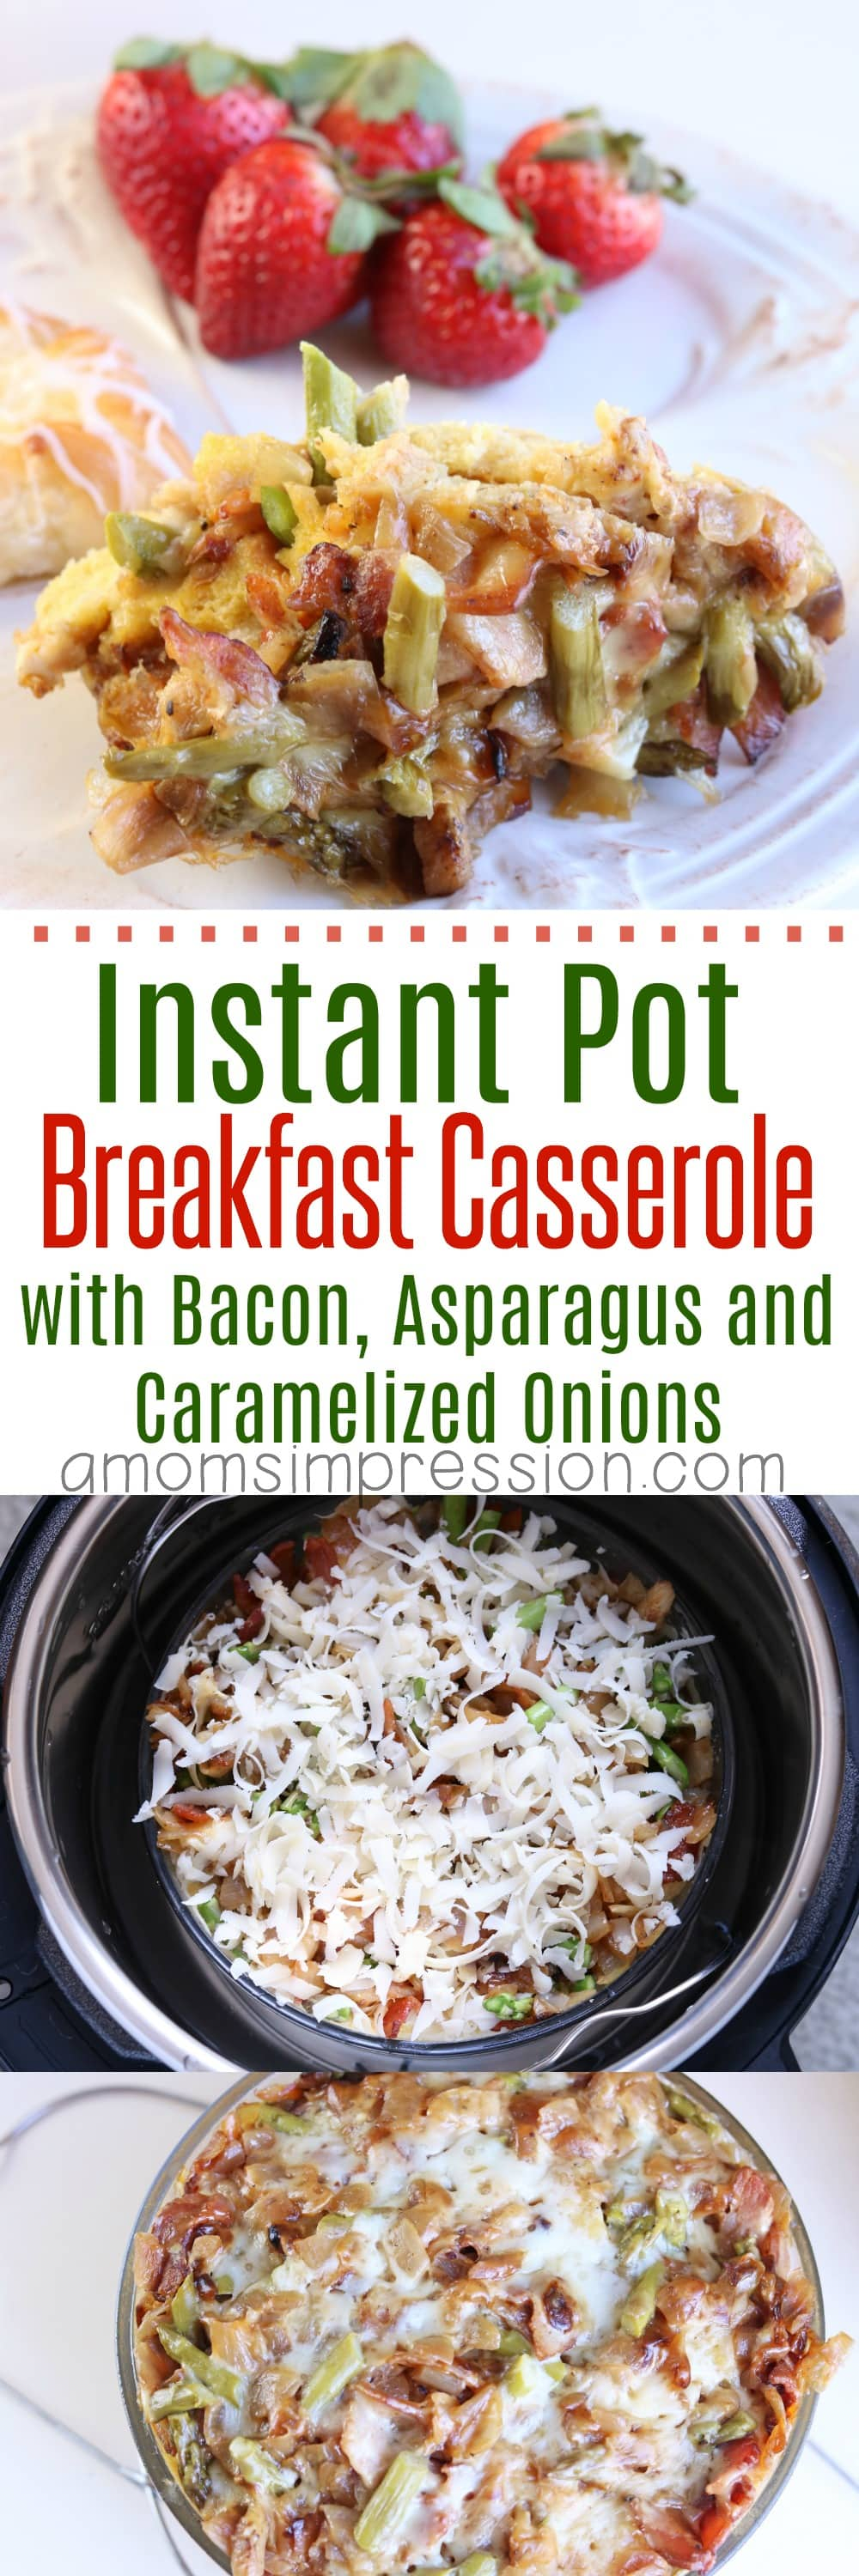 Do you use your Instant Pot for breakfast? If not you will now! This Instant Pot Breakfast Casserole with Bacon, Asparagus and Caramelized Onions looks amazing and tastes just as good. I love that it's so easy and has healthy ingredients.